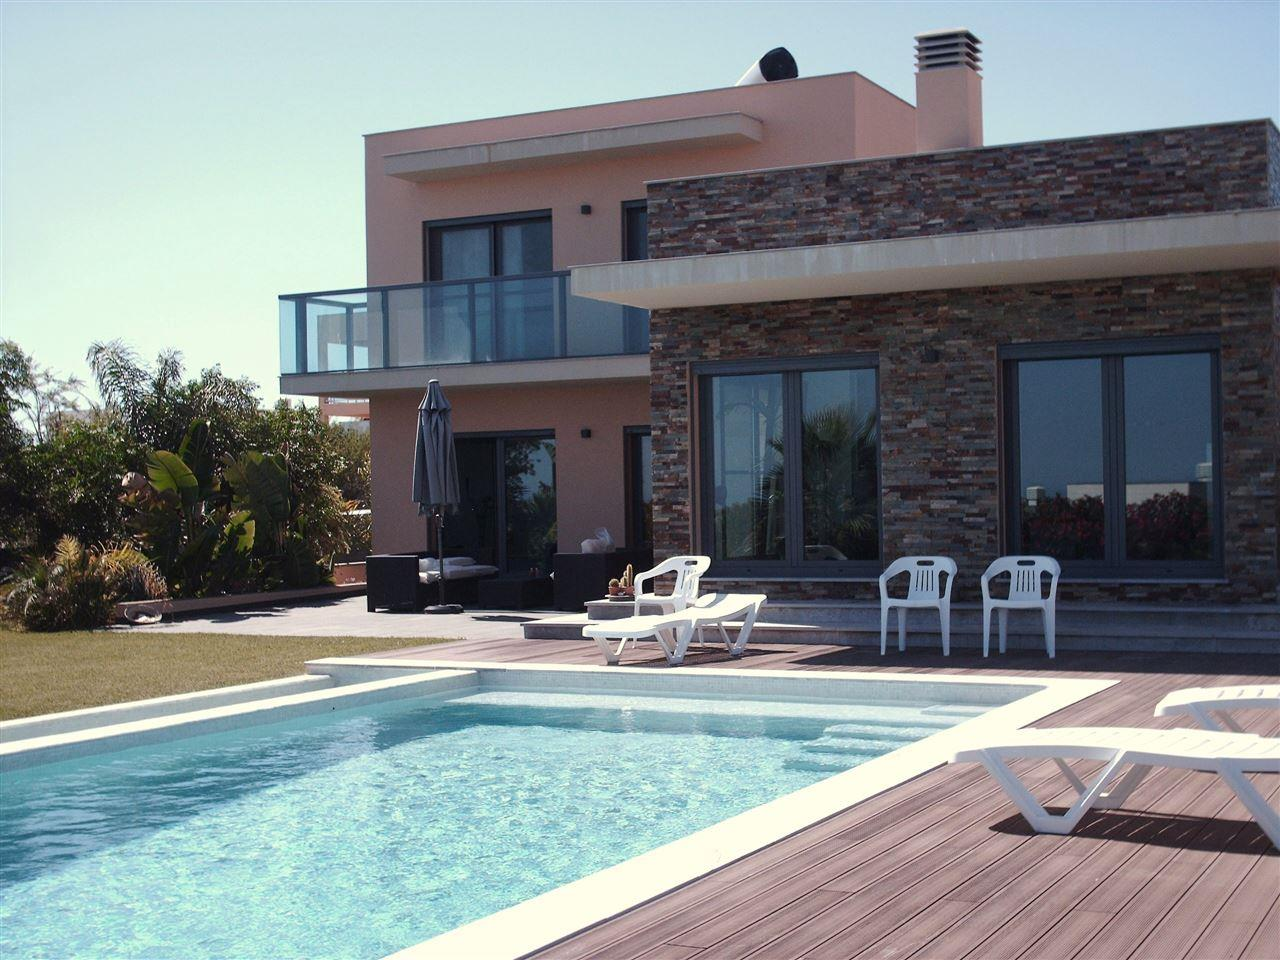 Single Family Home for Sale at Detached house, 4 bedrooms, for Sale Silves, Algarve 8365-387 Portugal